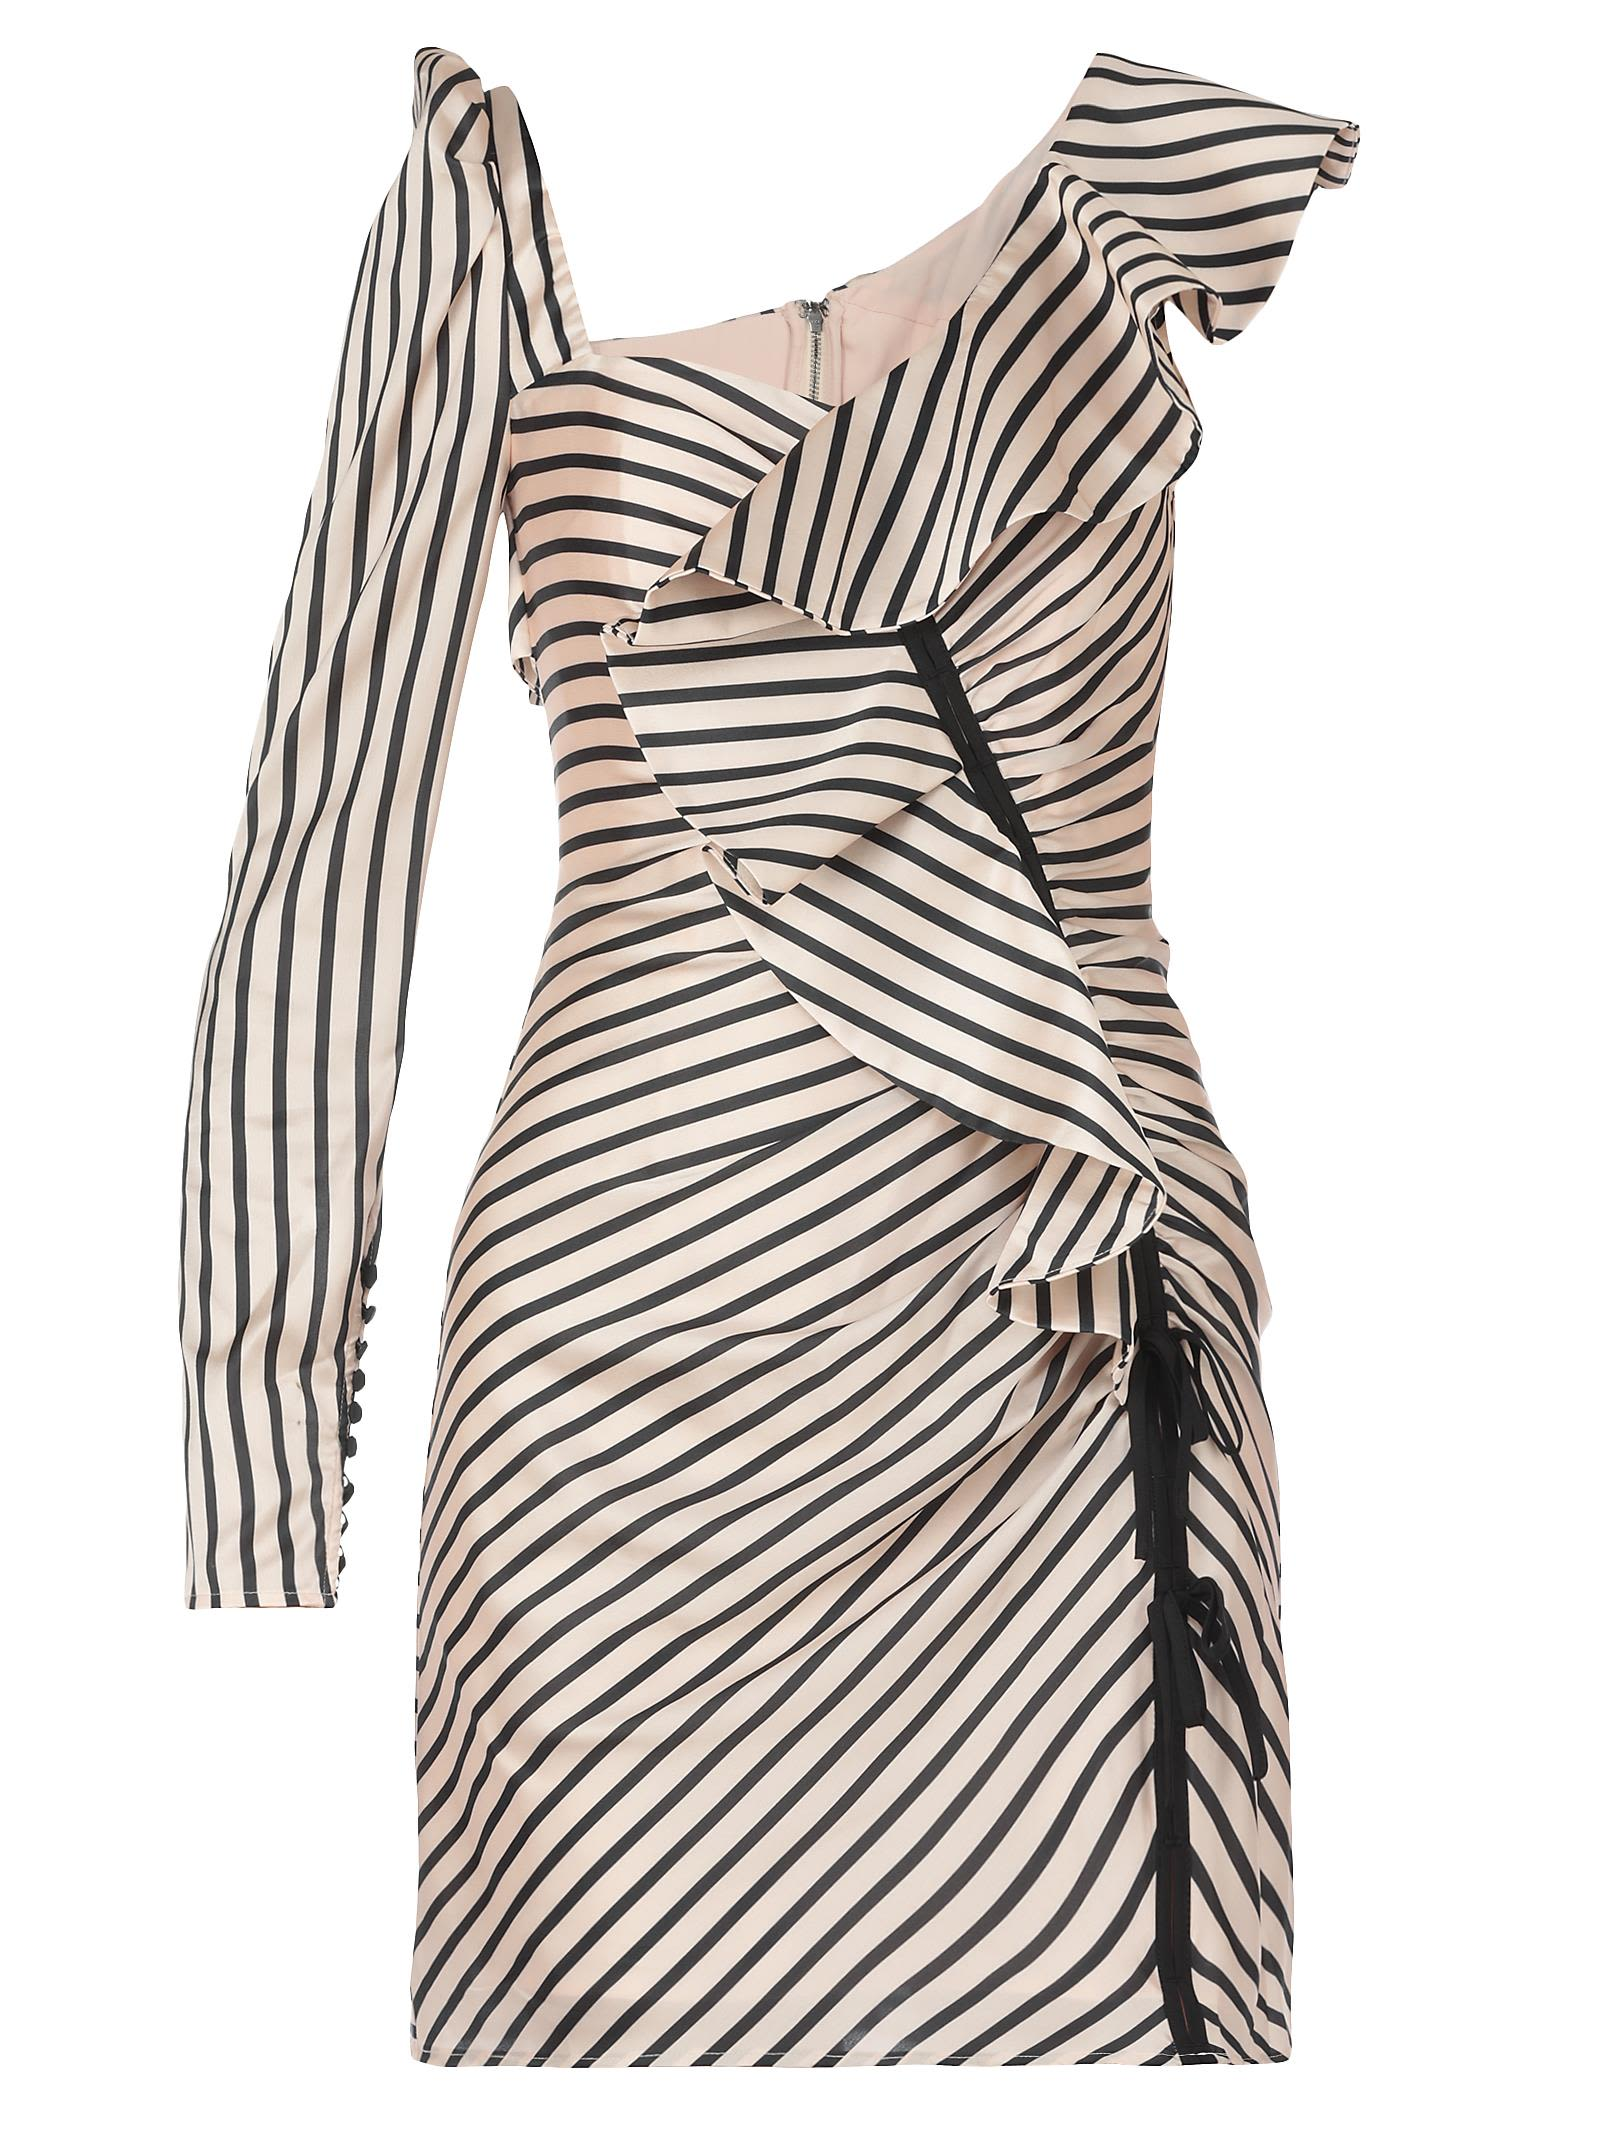 SELF-PORTRAIT STRIPED DRESS